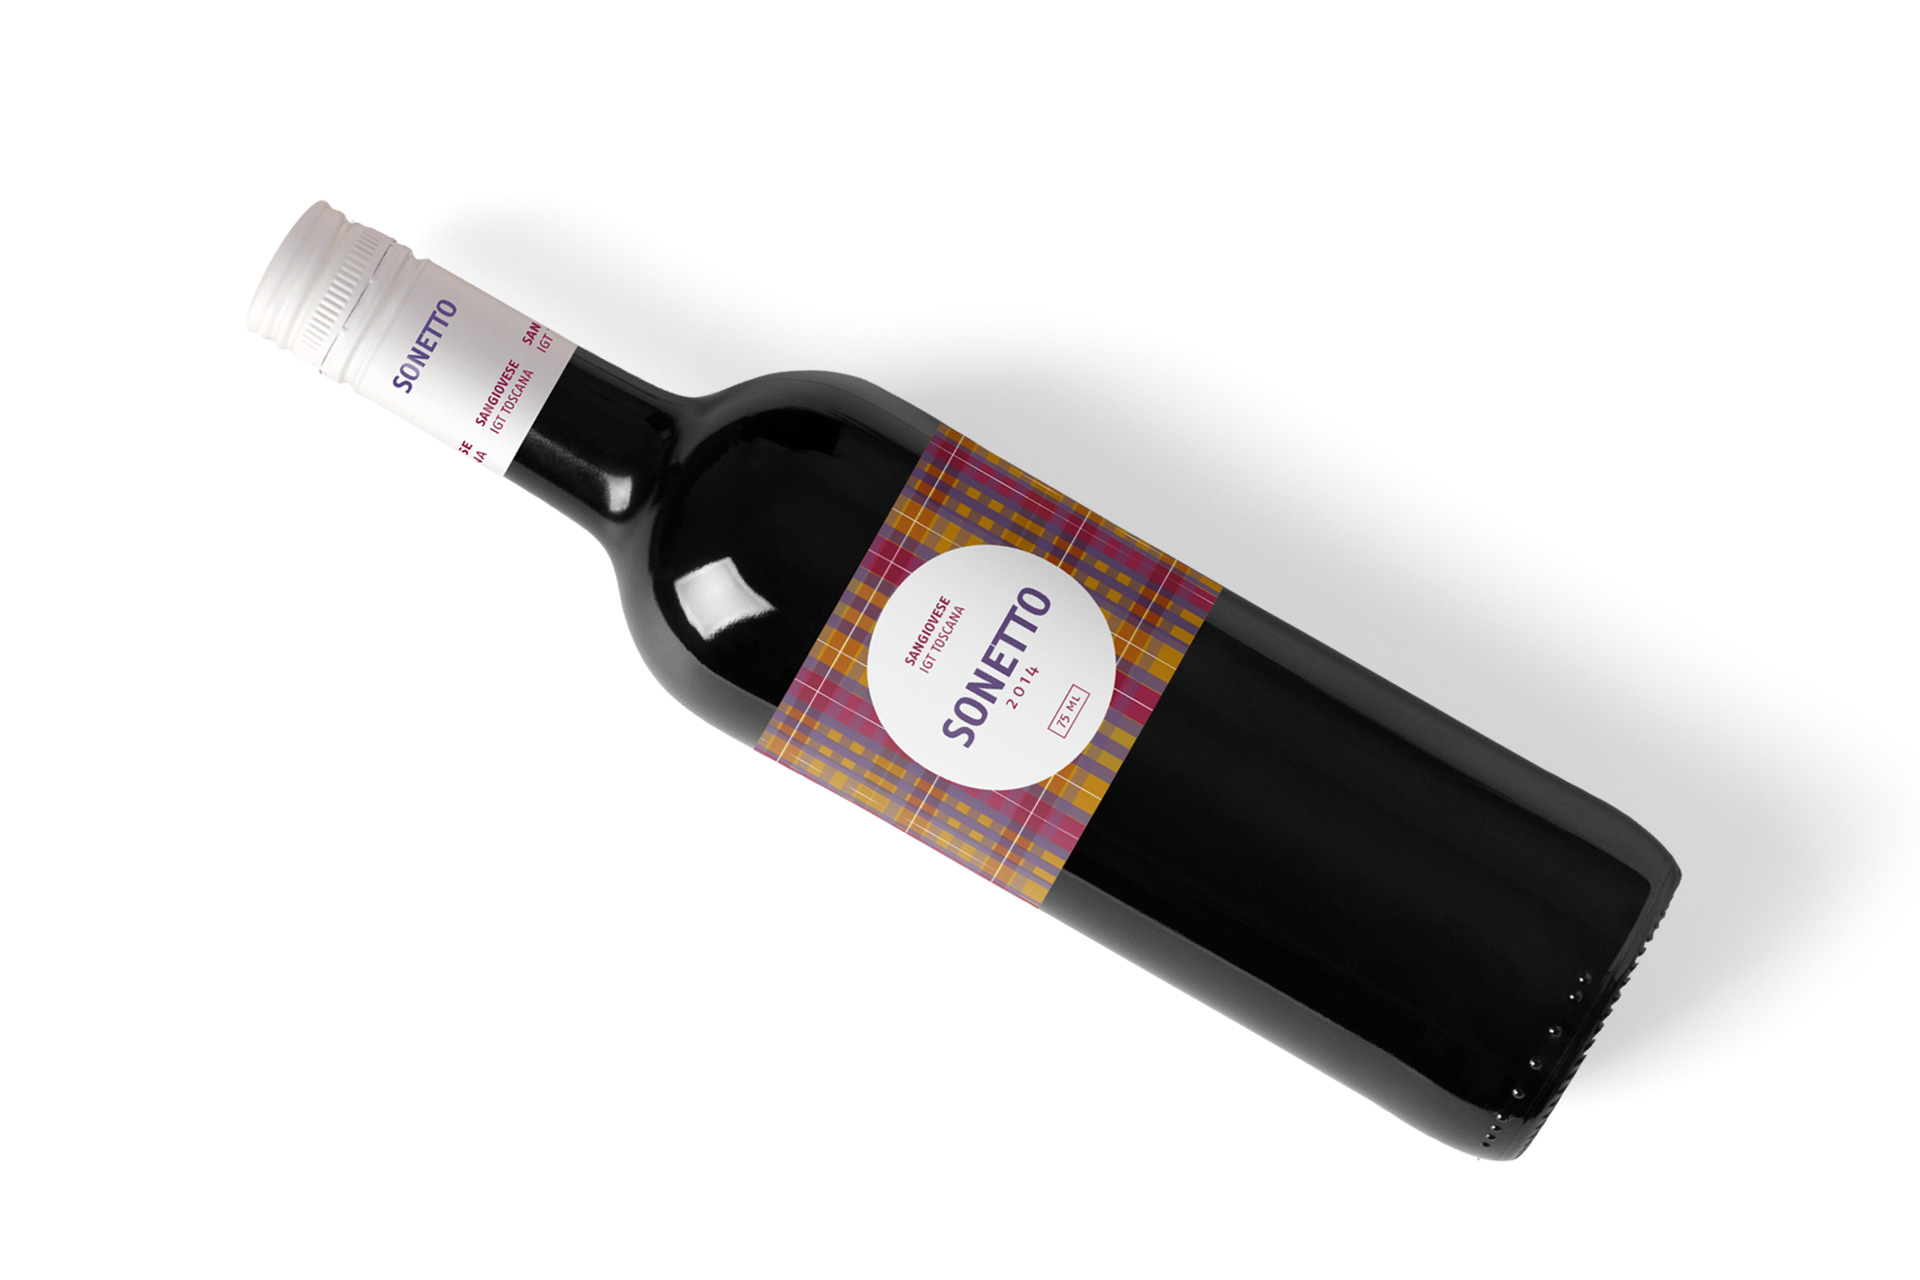 Sonetto Sangiovese Diseño de Packaging